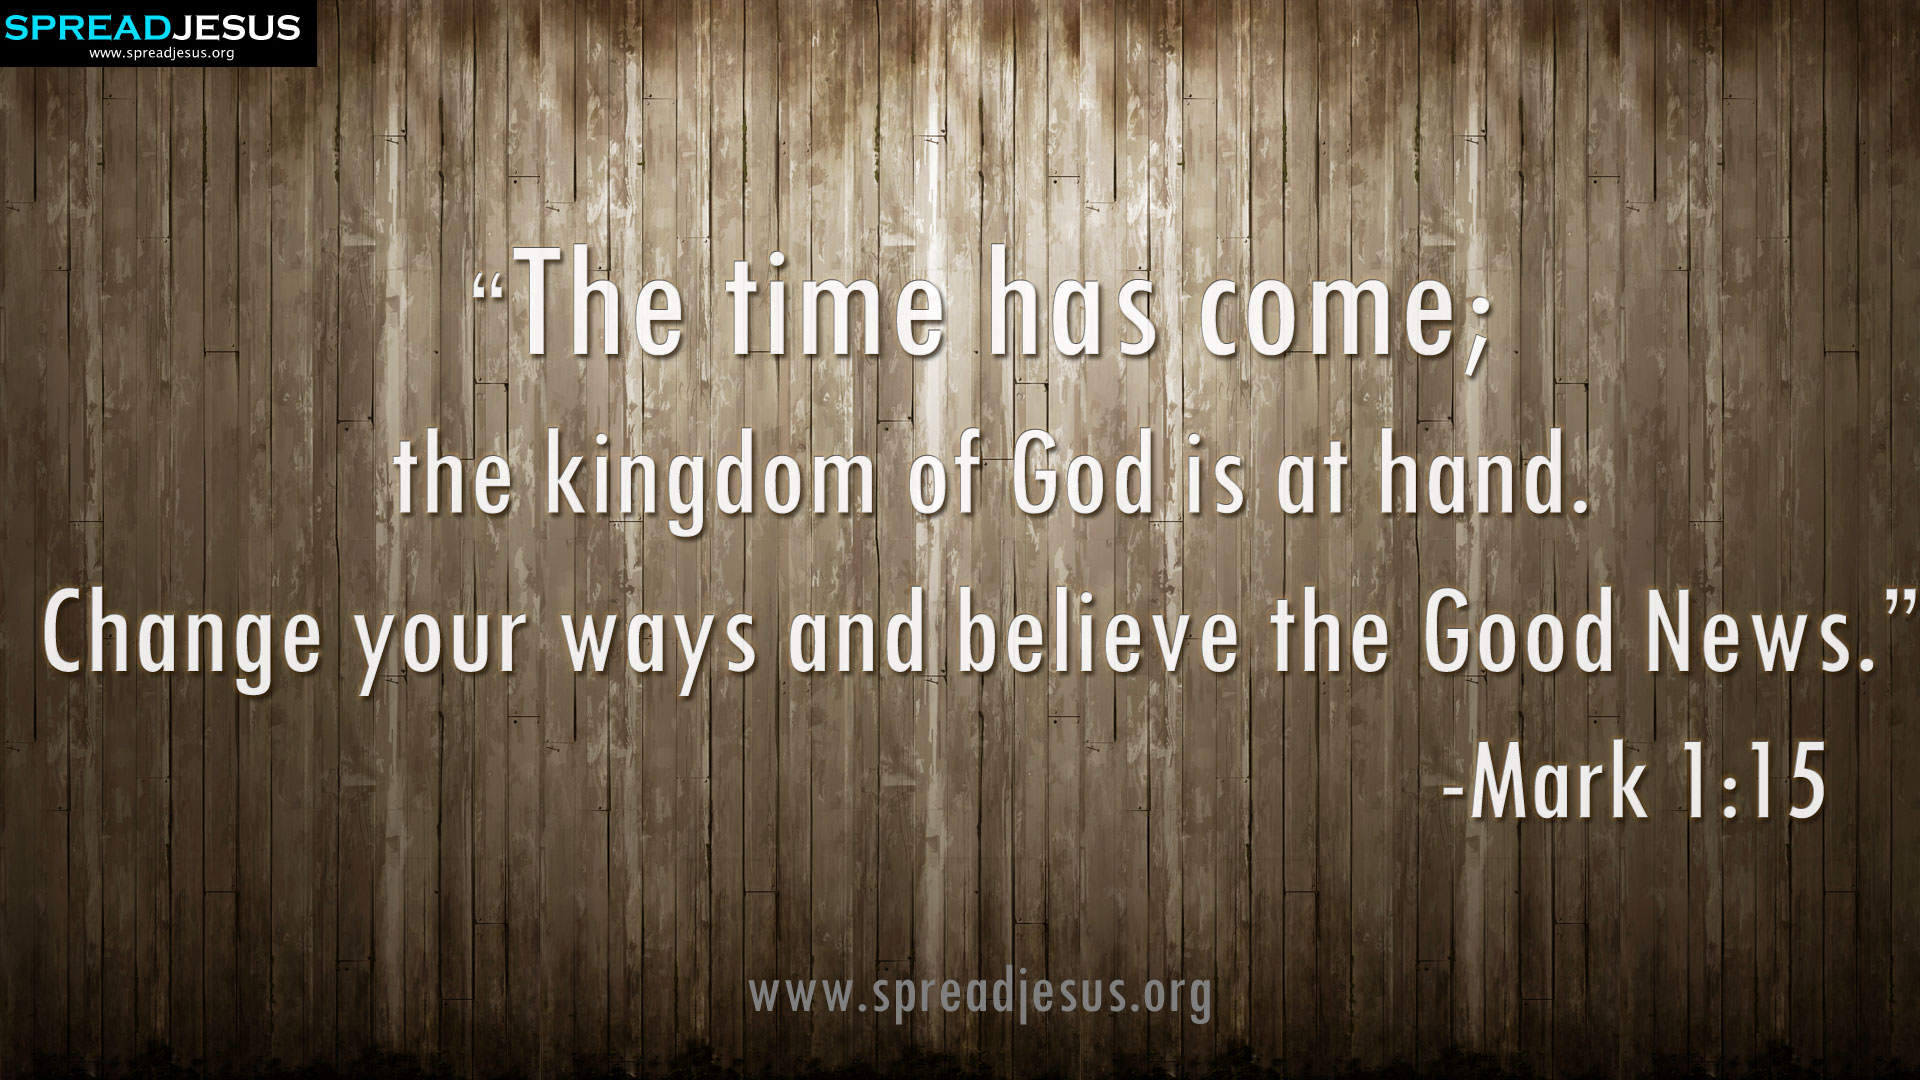 Holy Bible Quotes HD-Wallpaper download the kingdom of God is at hand. Change your ways and believe the Good News. -spreadjesus.org